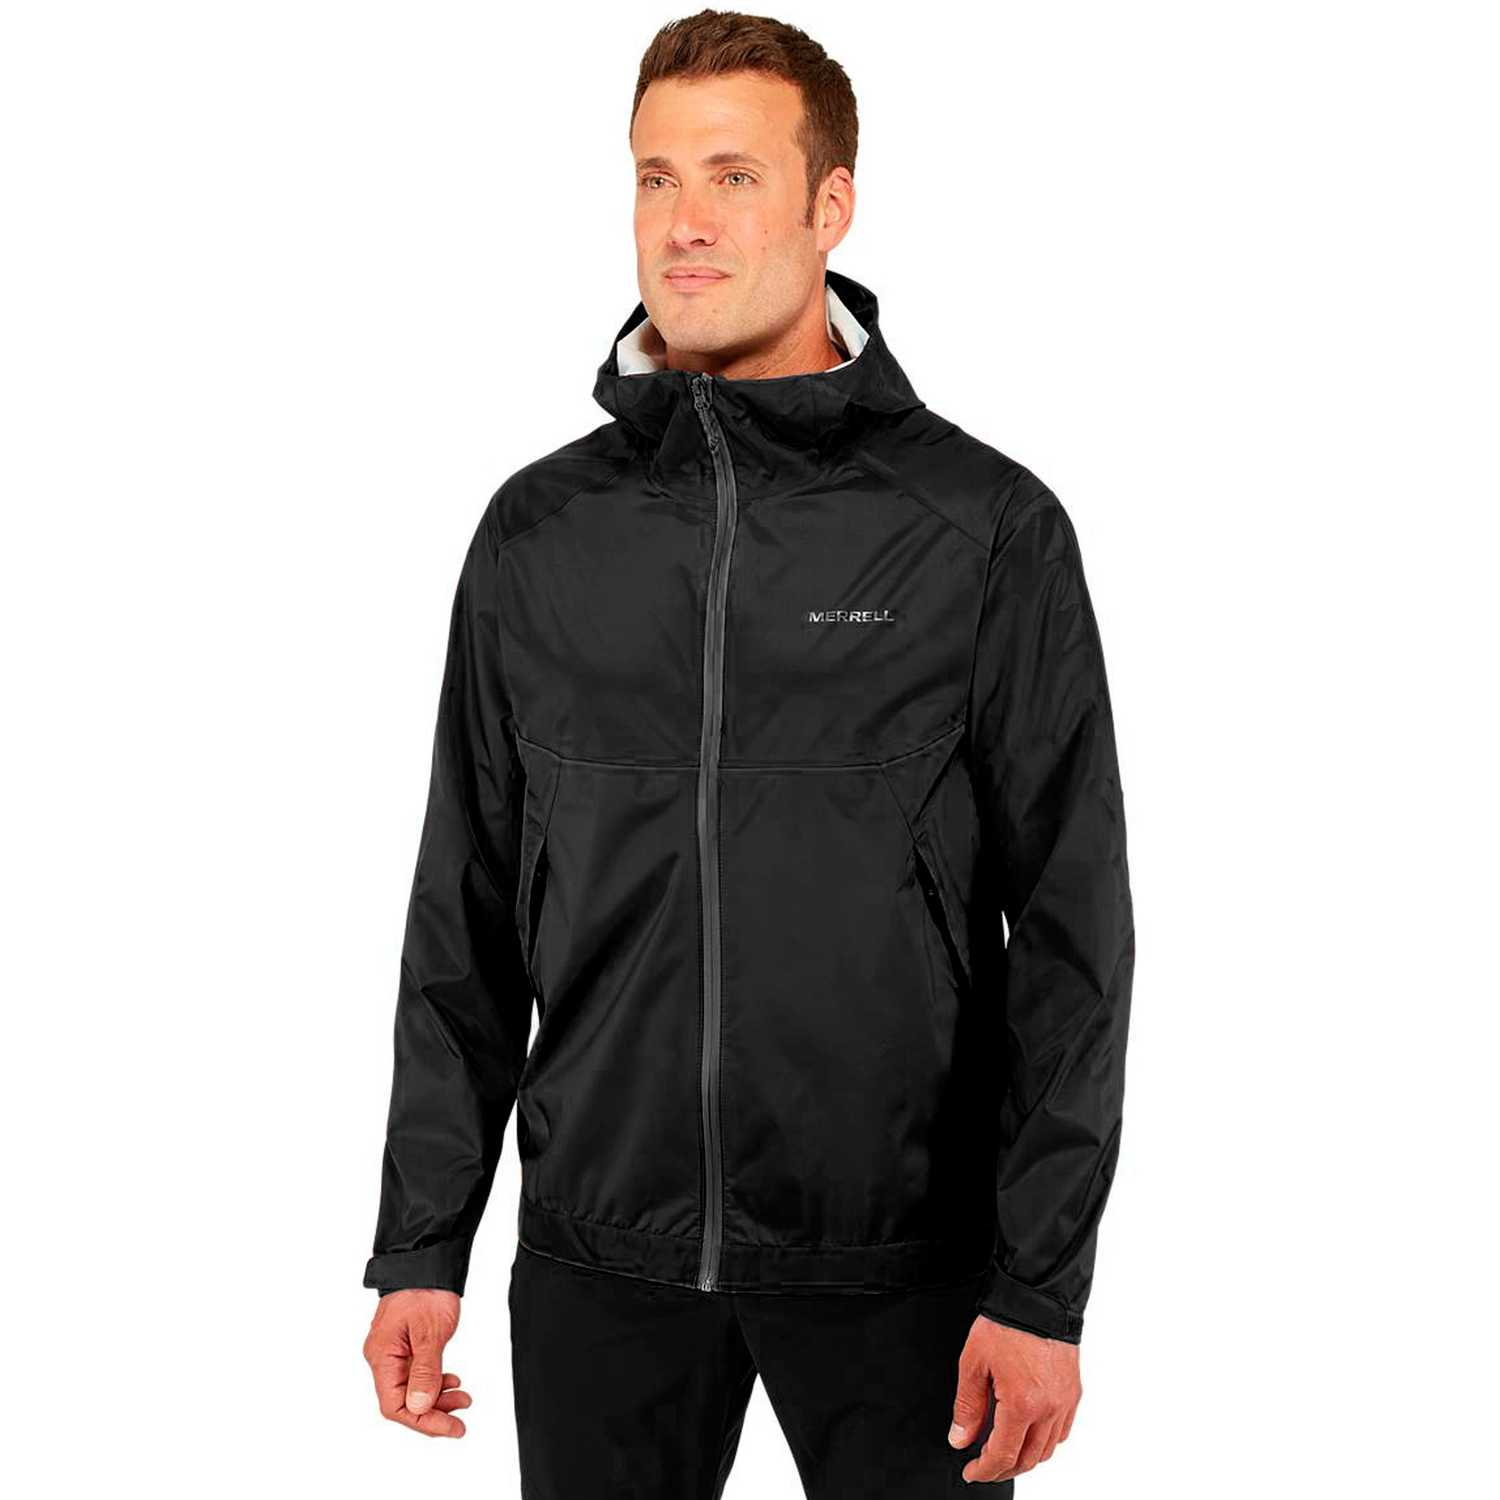 Merrell fallon 4.0 fz noninsulated jacket Negro Casacas de Atletismo